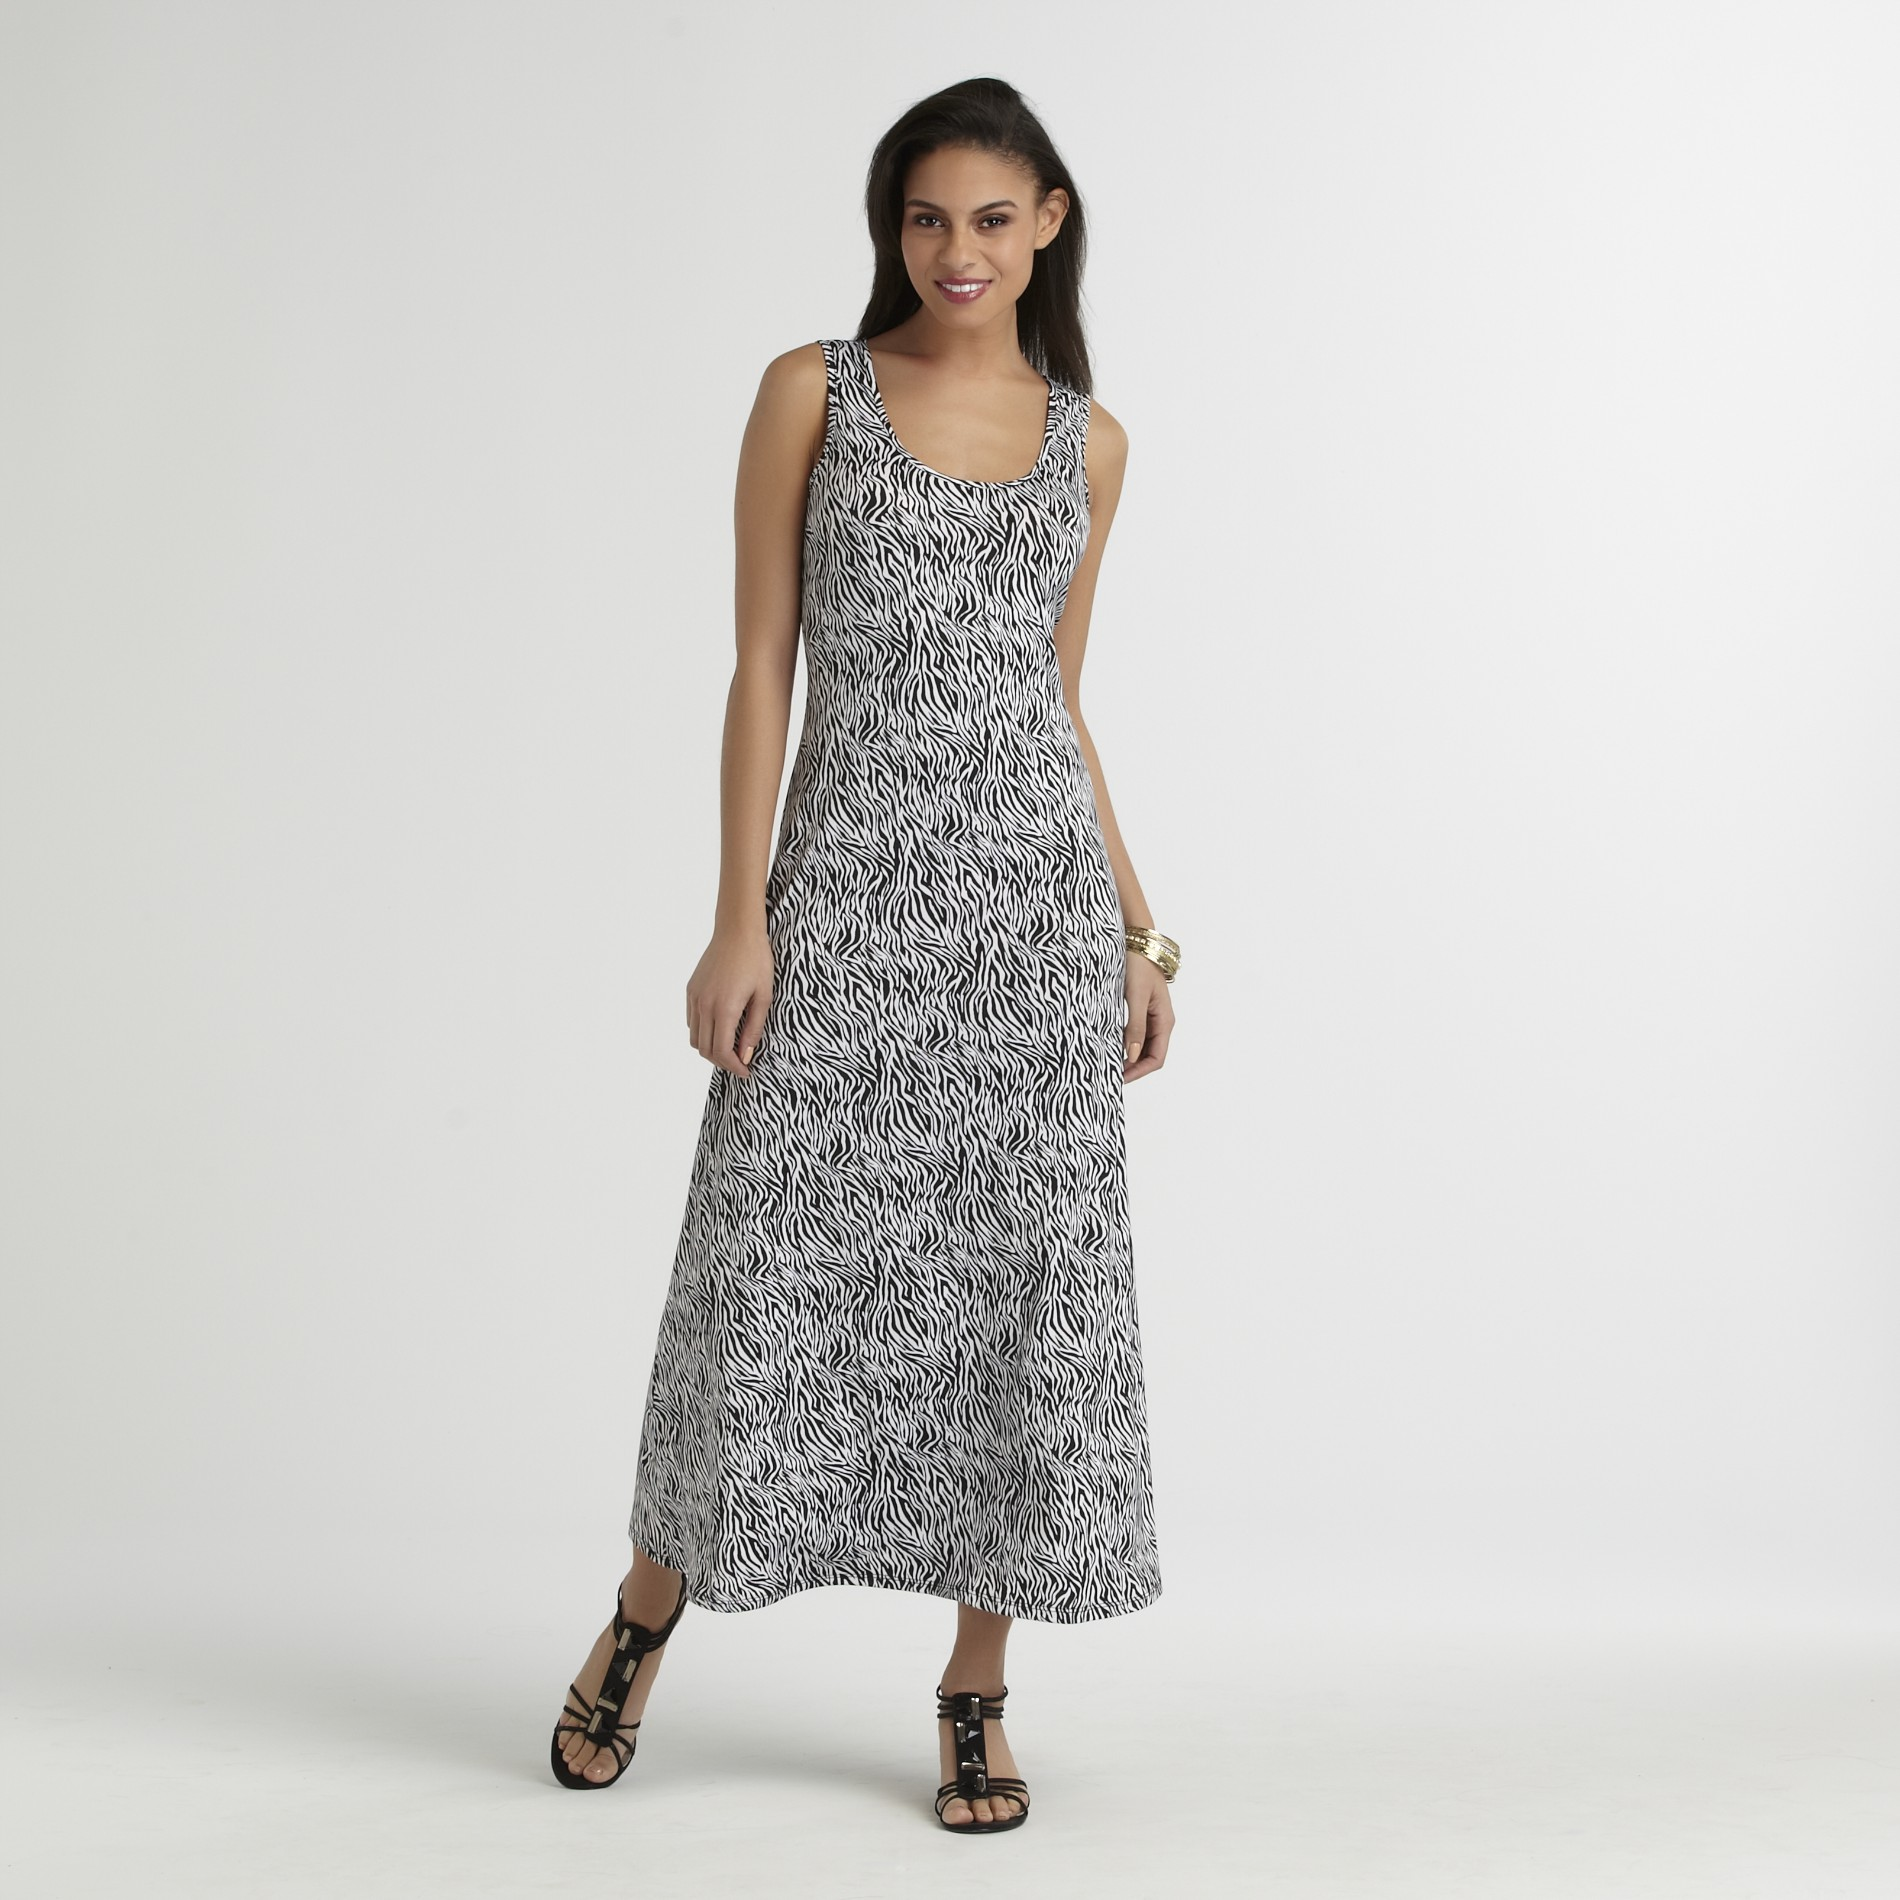 JBS Women's Maxi Dress - Zebra Print at Sears.com